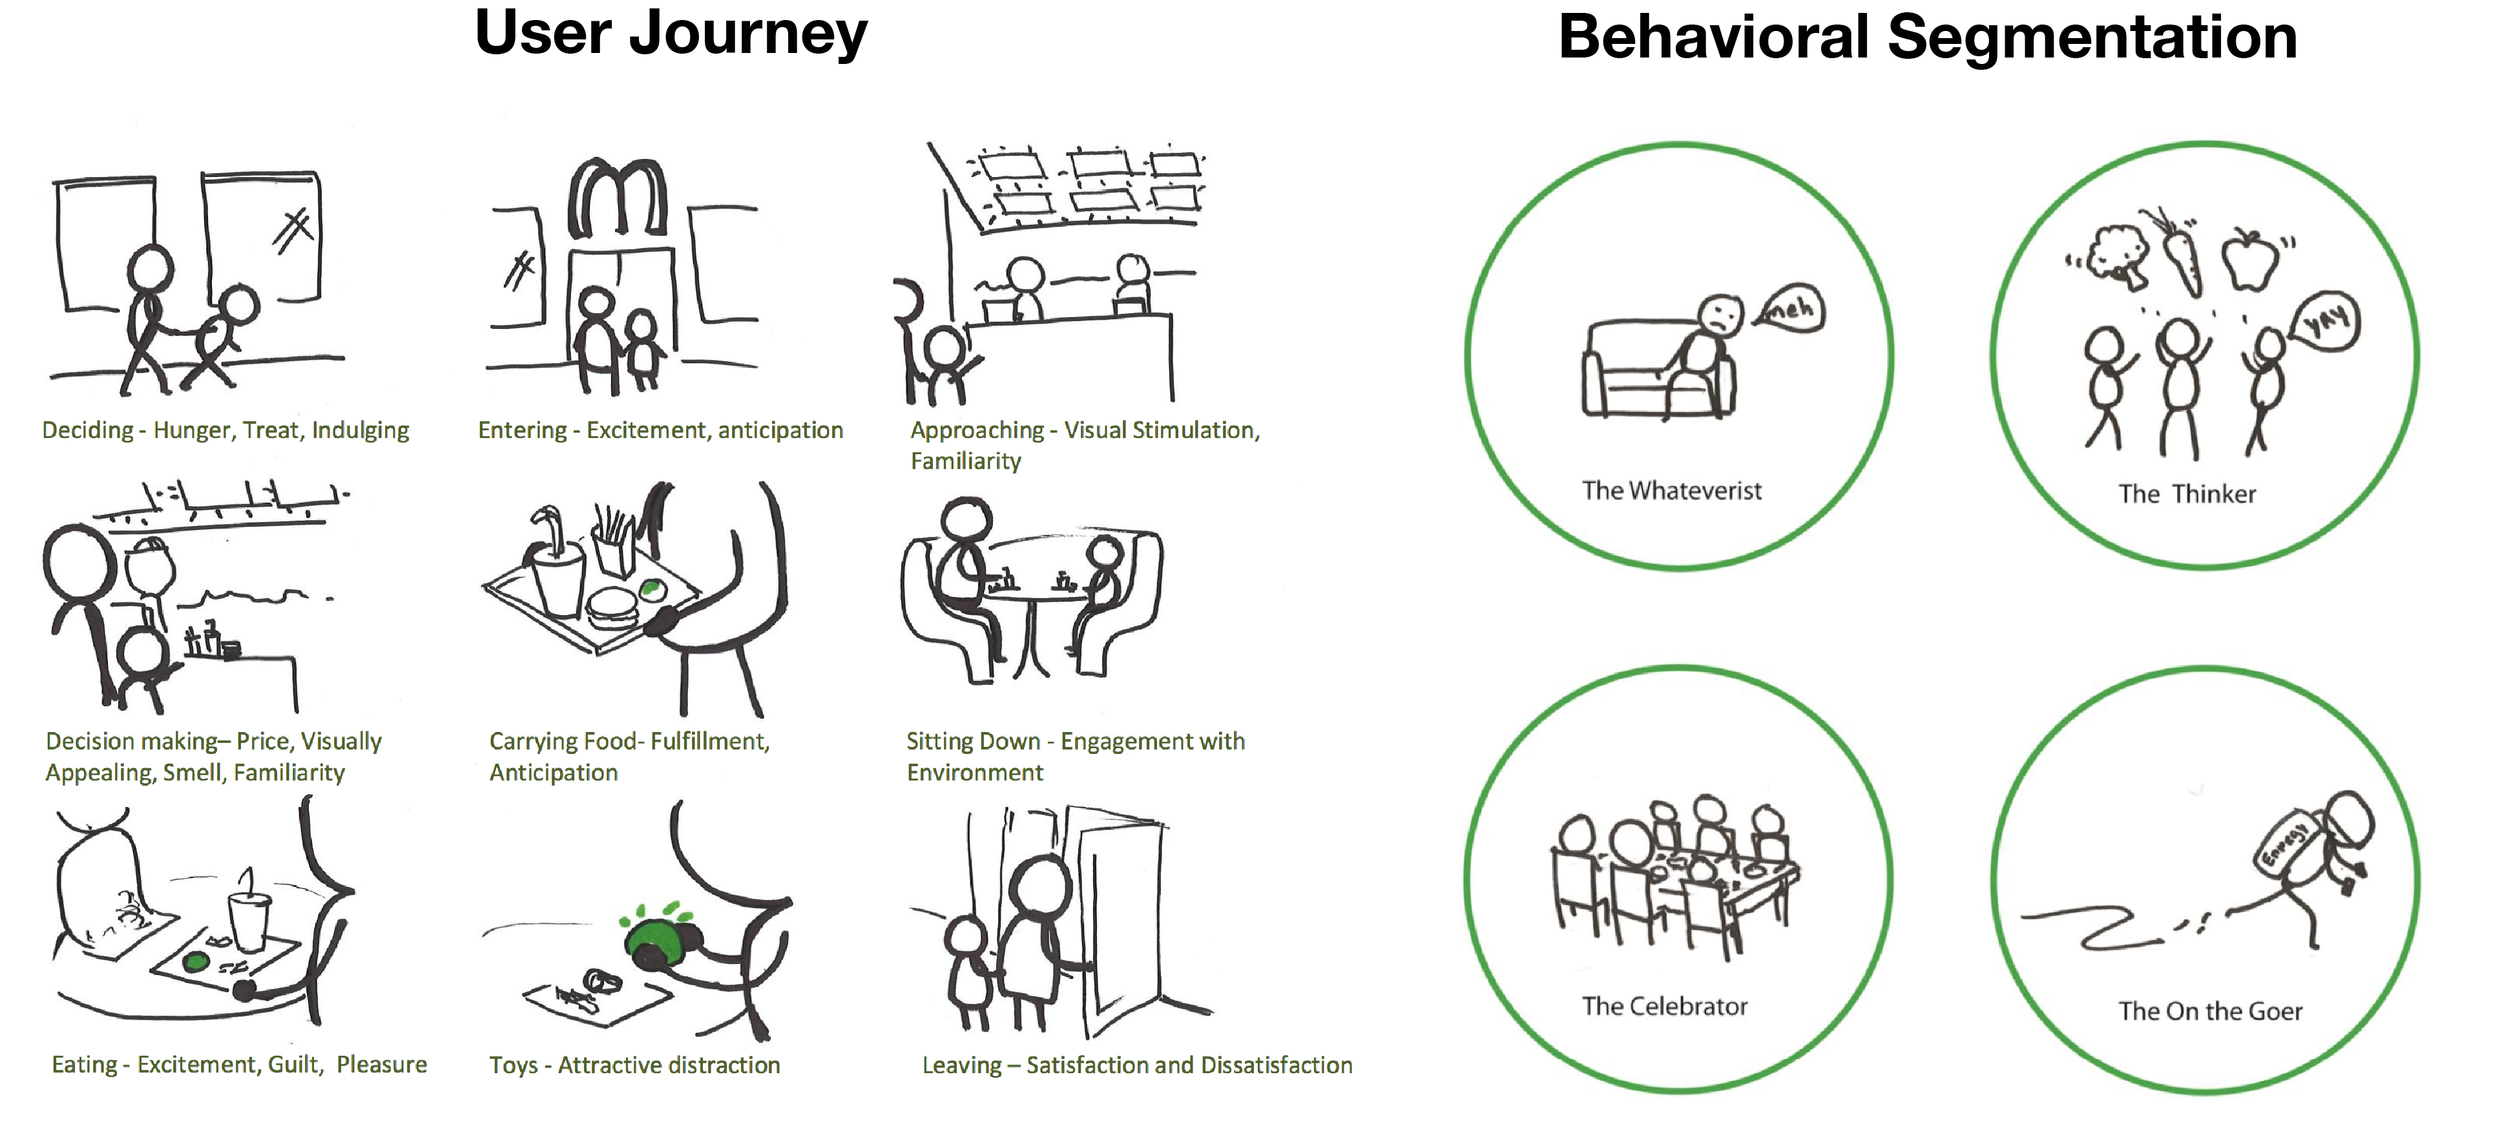 Frameworks - Personas and Journeys     Dissecting the user journey and transition moments, digging deeper into user types.